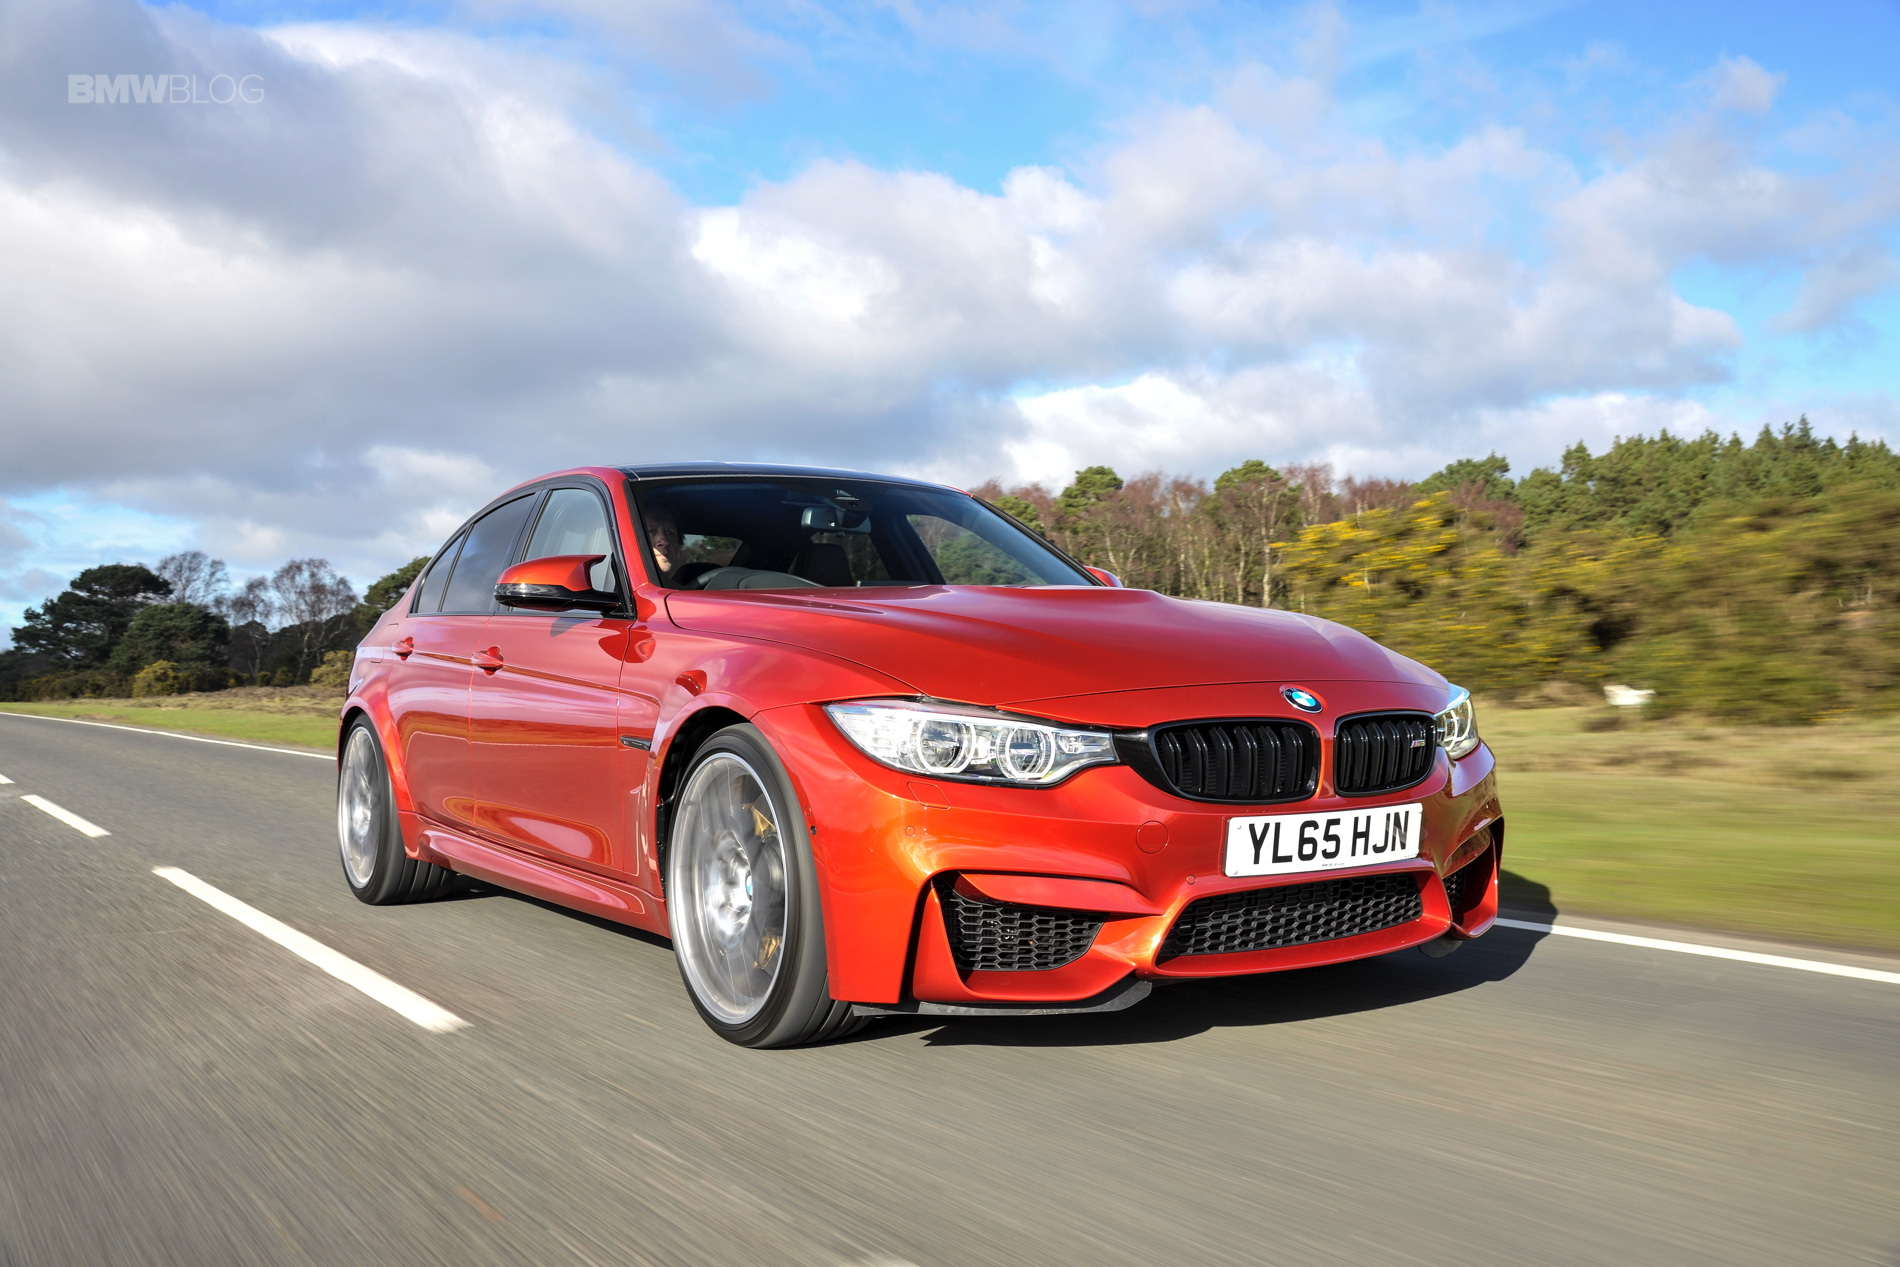 2016 BMW M3 Competition Package - New Photo Gallery